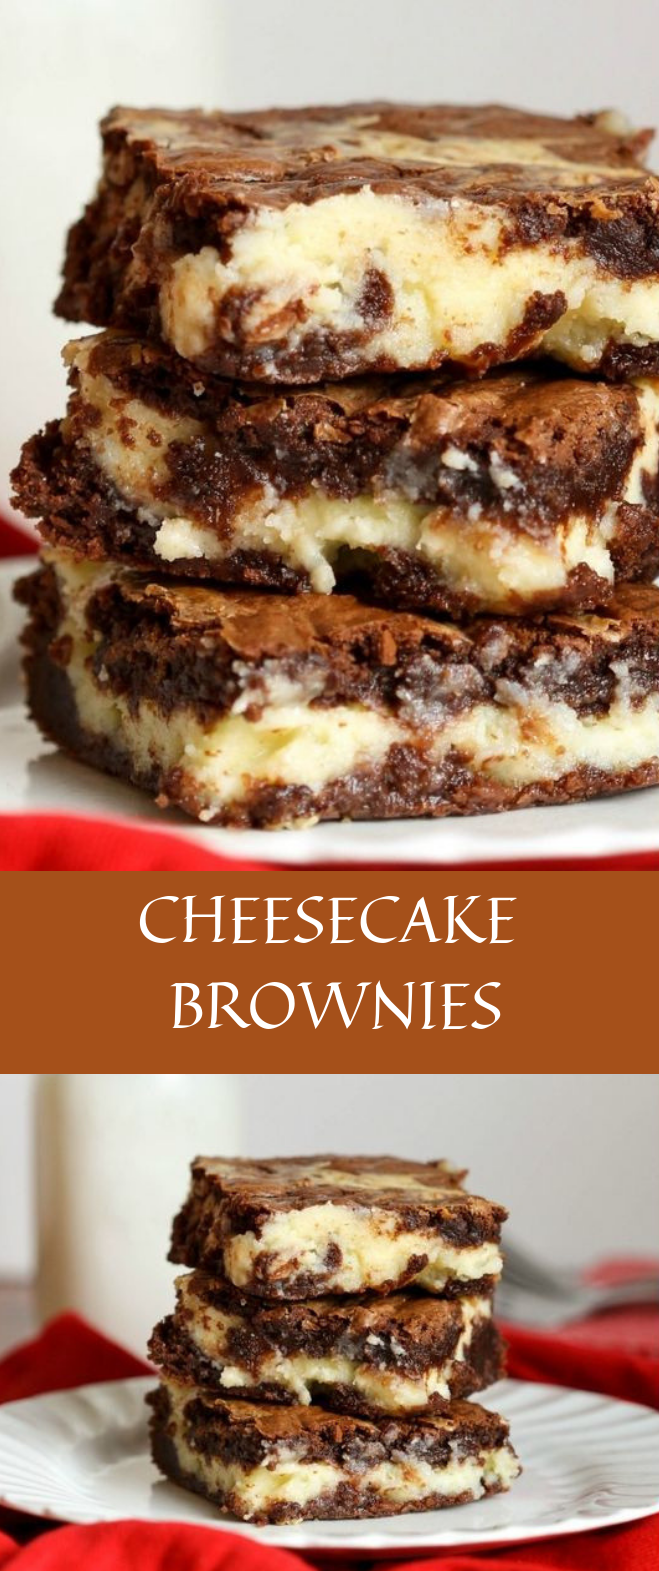 CHEESECAKE BROWNIES #cake #brownies